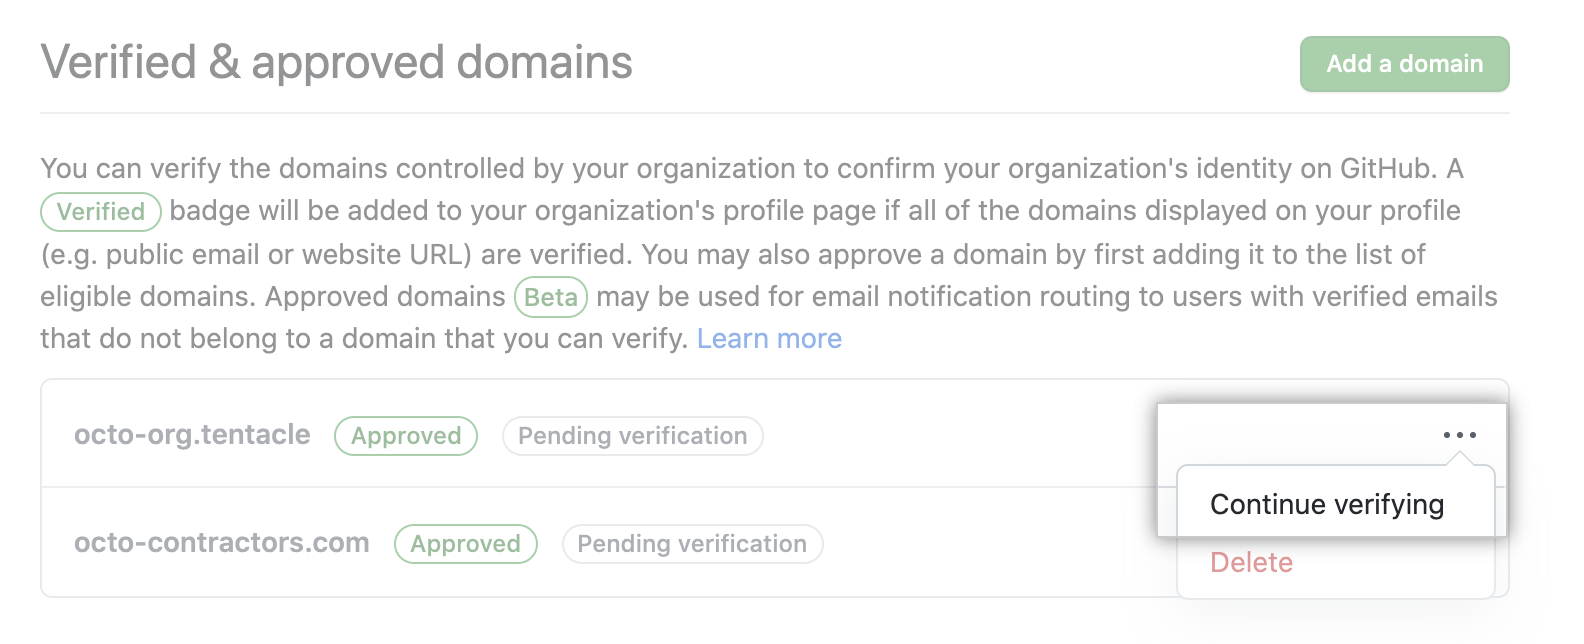 Verifying your organization's domain - GitHub Help